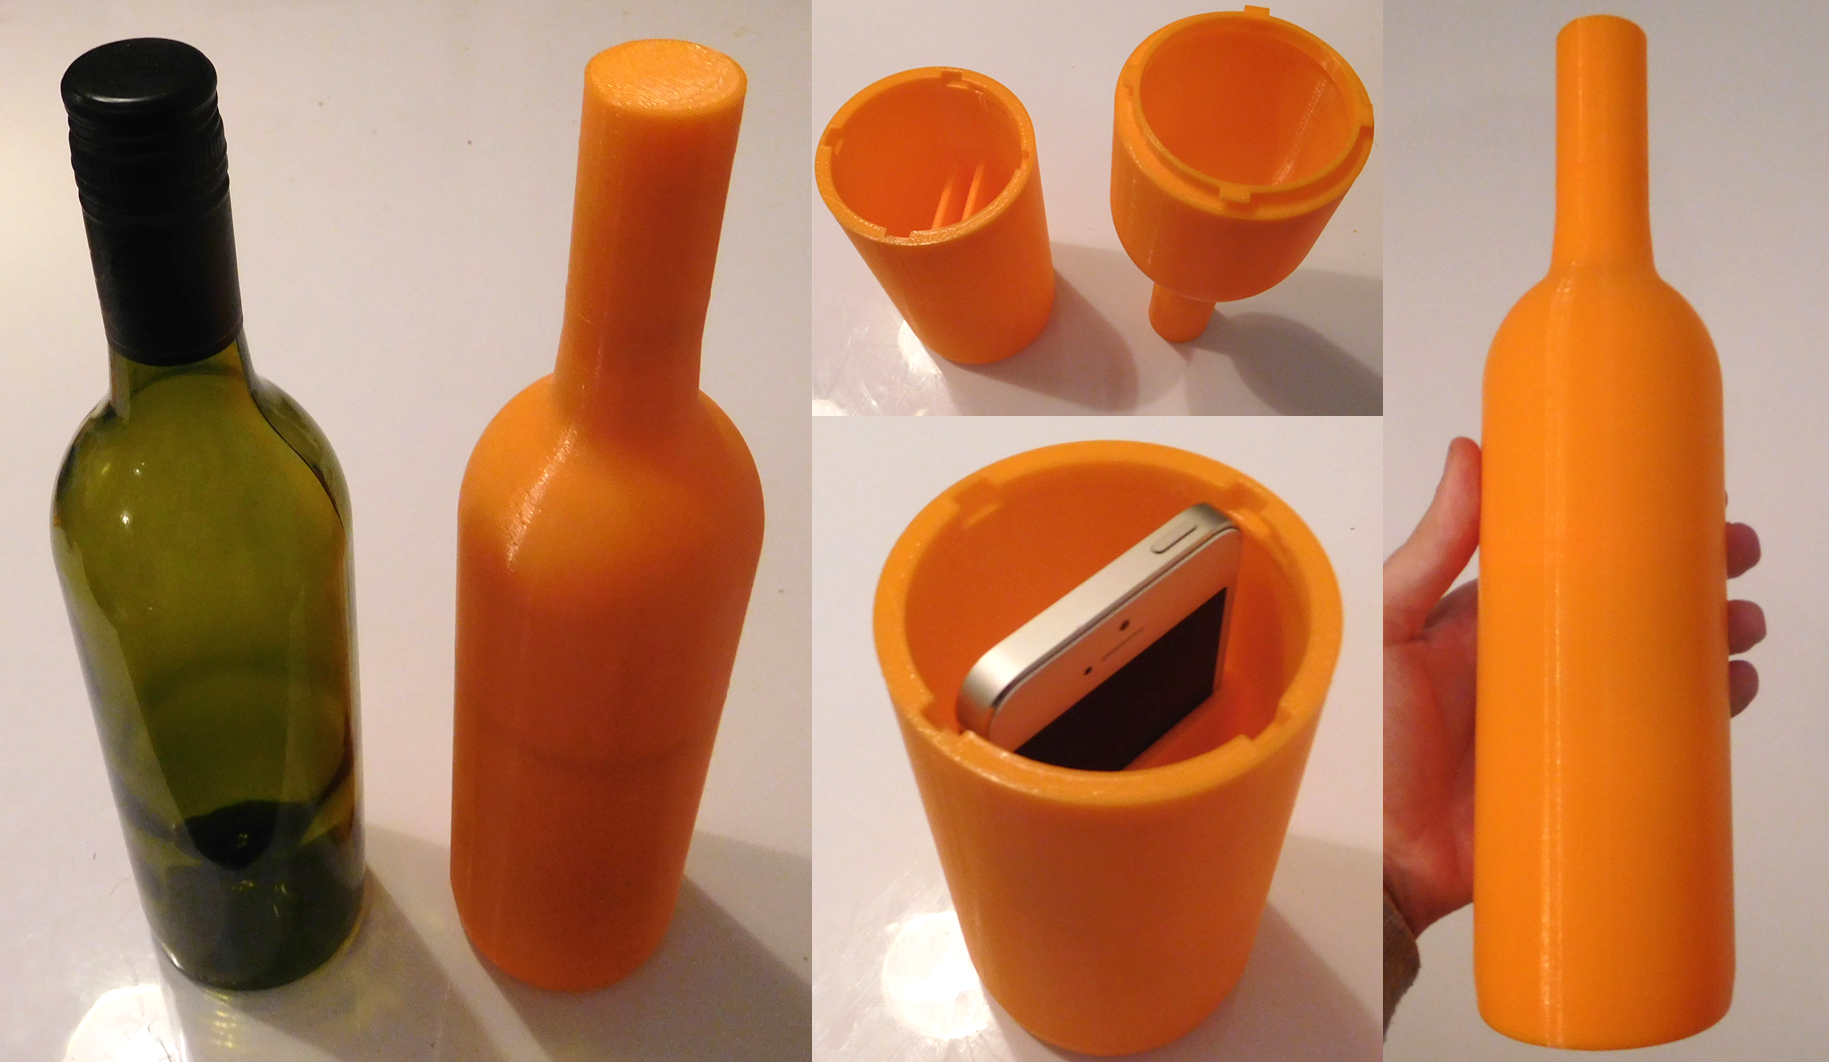 A bottle rapid prototype developed to test accelerations along a conveyor belt using a mobile app.